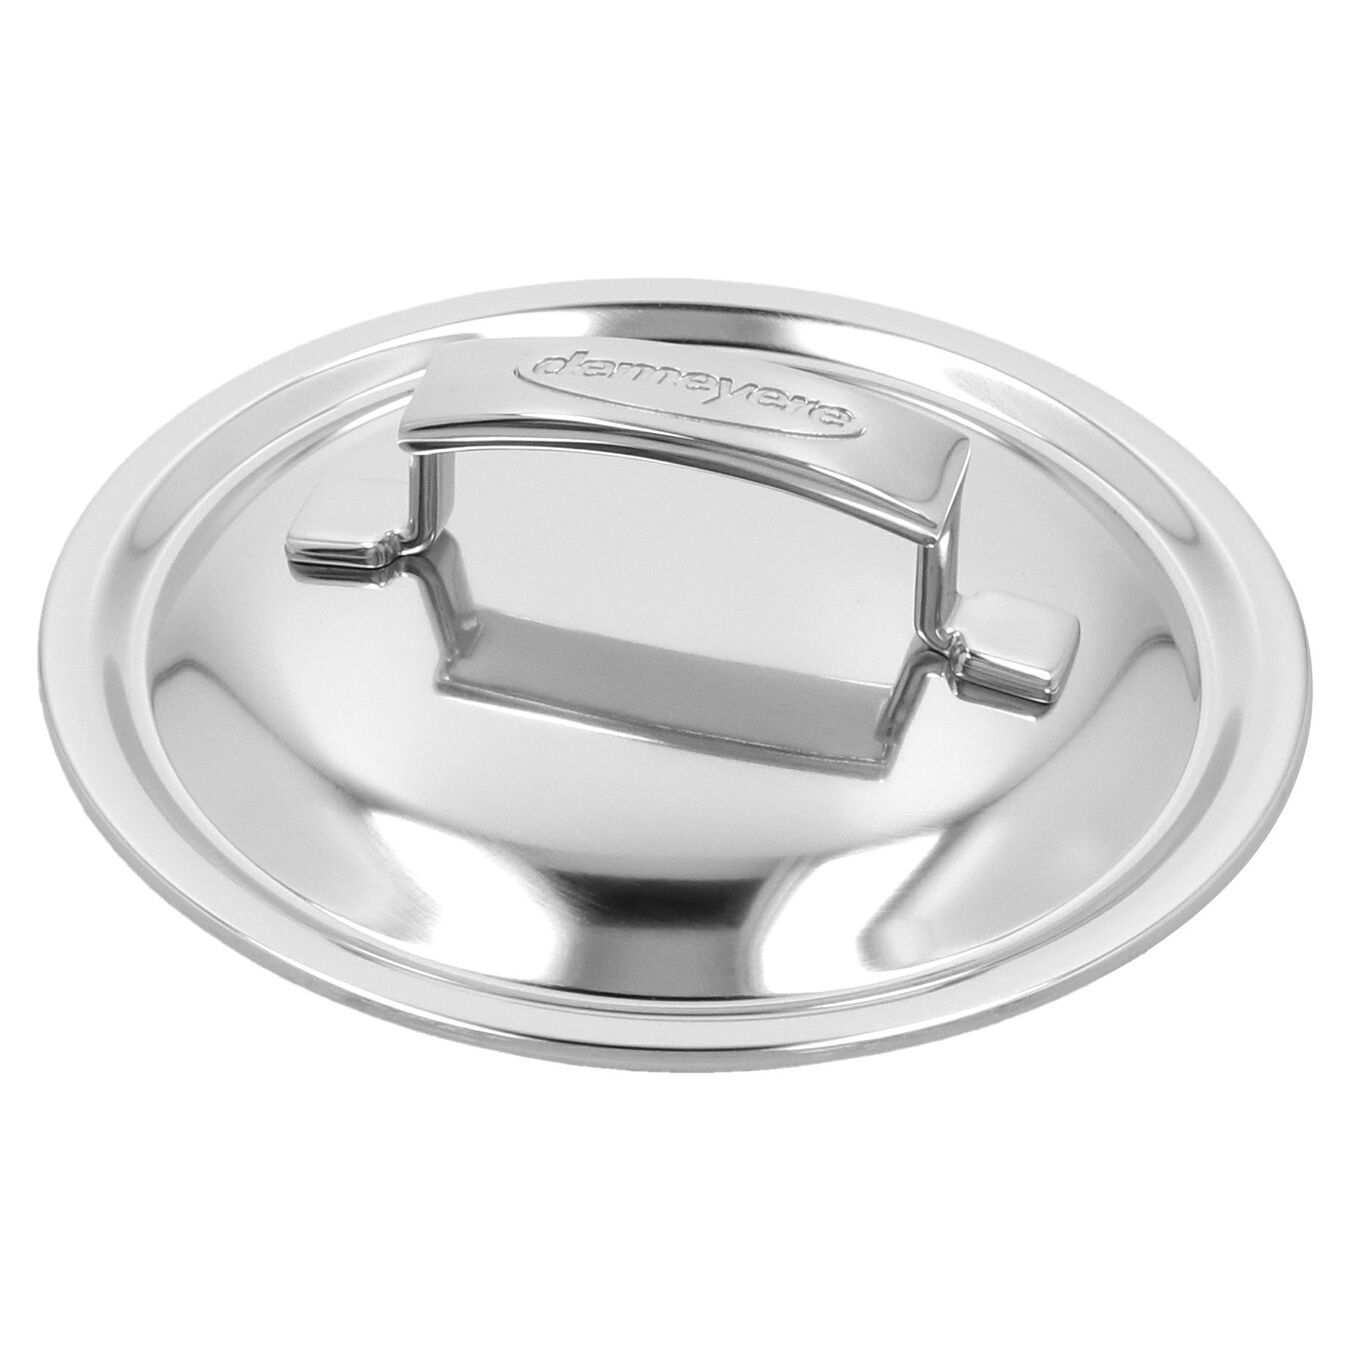 1.5 qt Sauce pan with double walled lid, 18/10 Stainless Steel ,,large 4